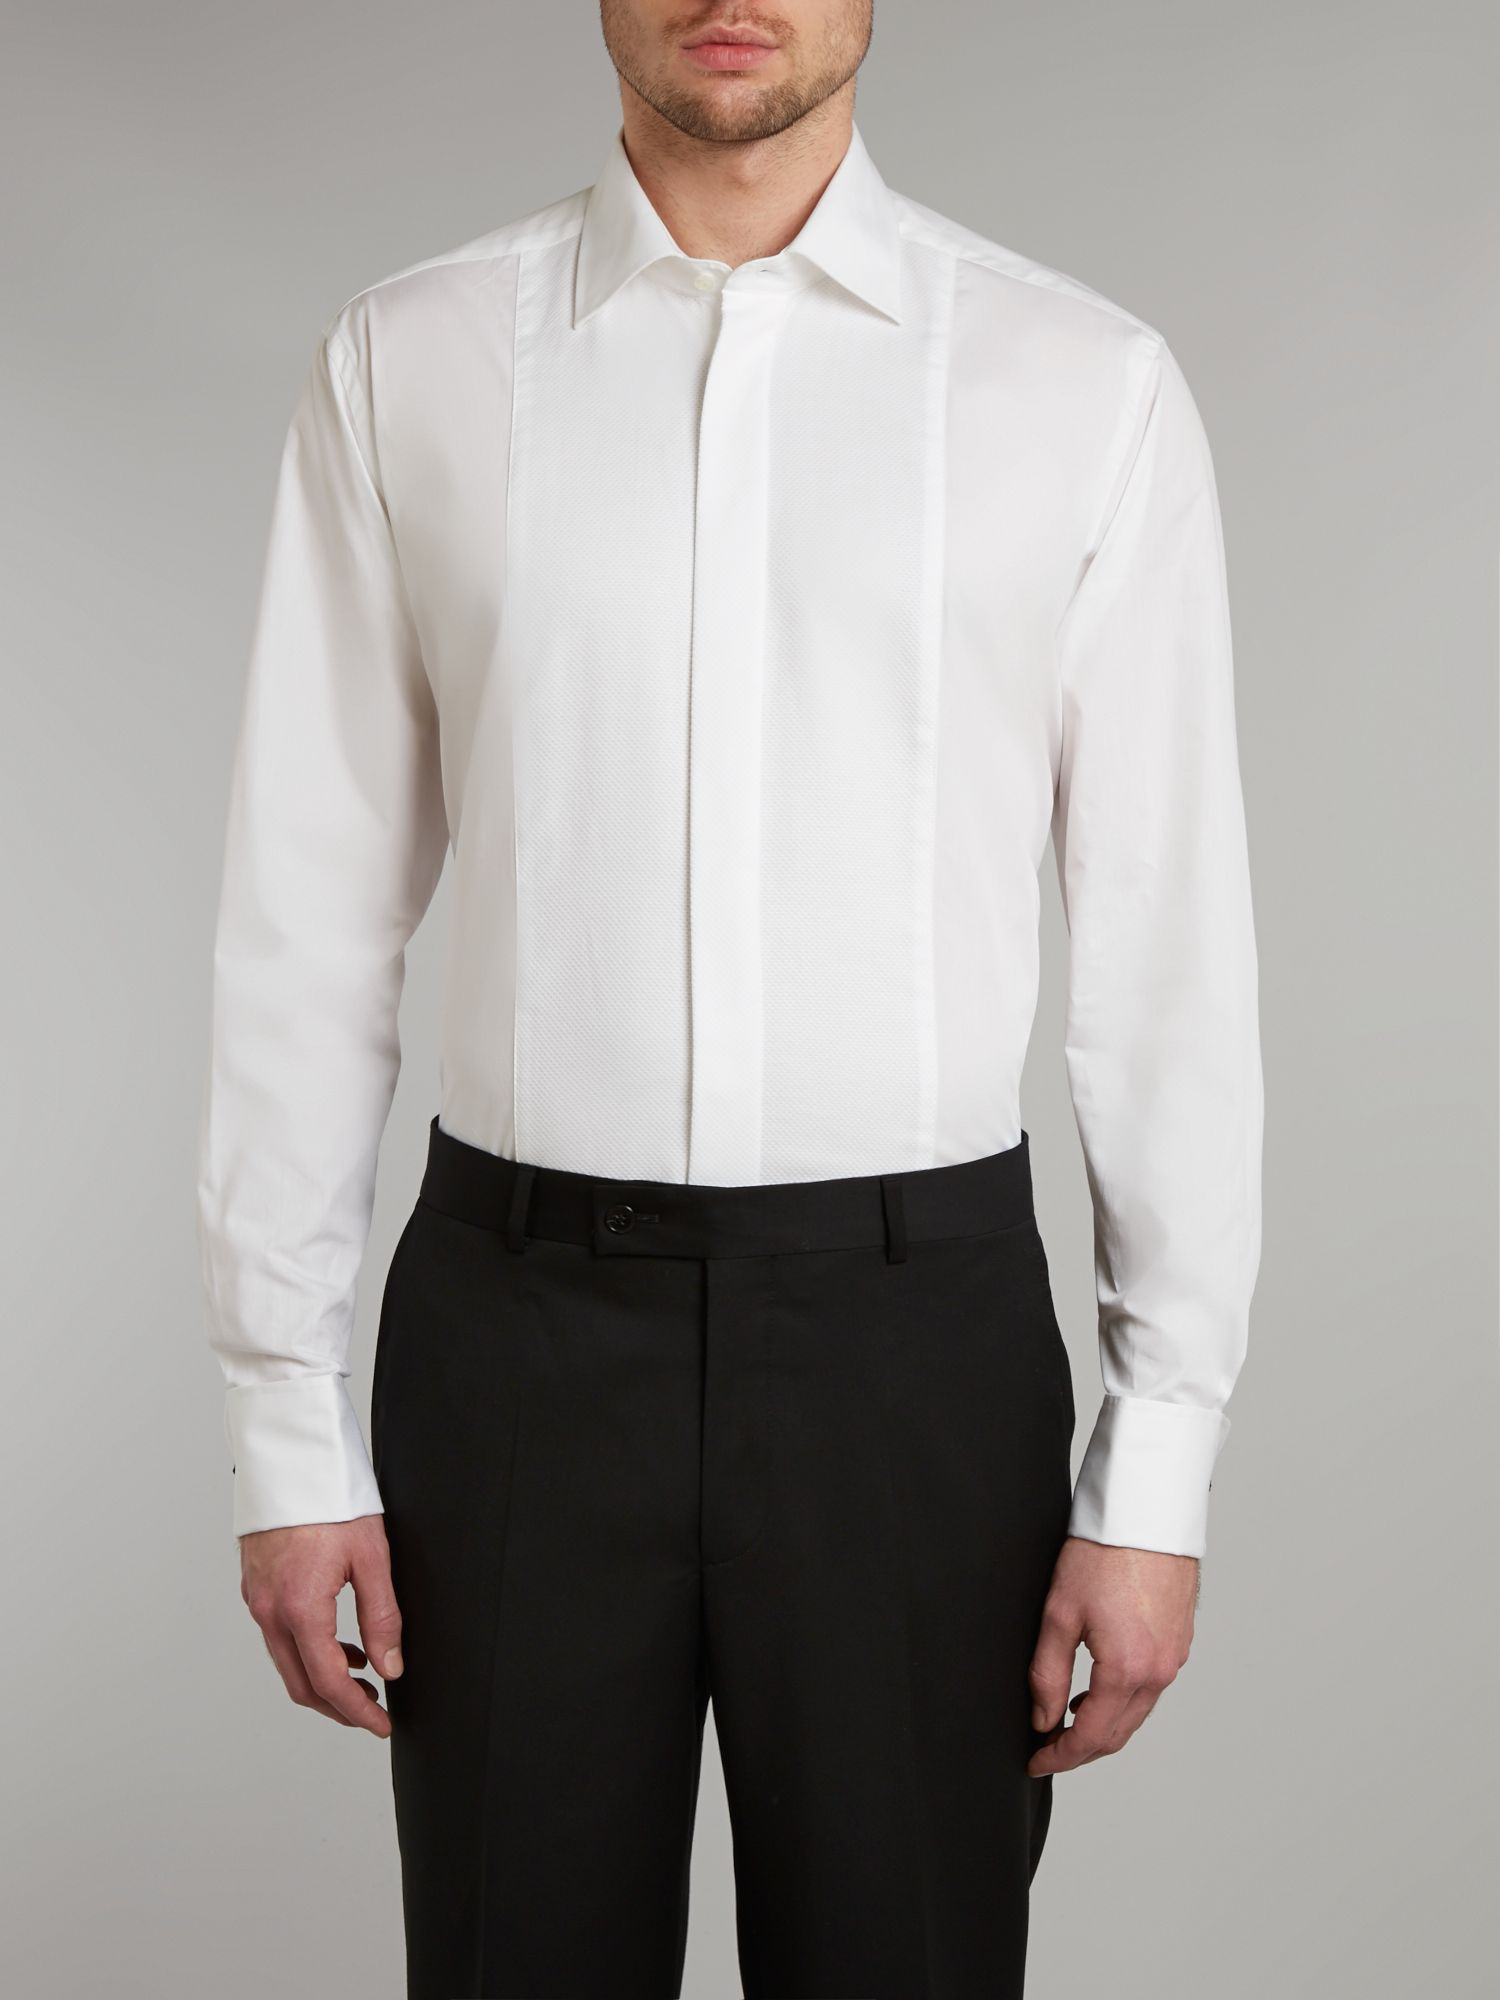 White marcella dress shirt